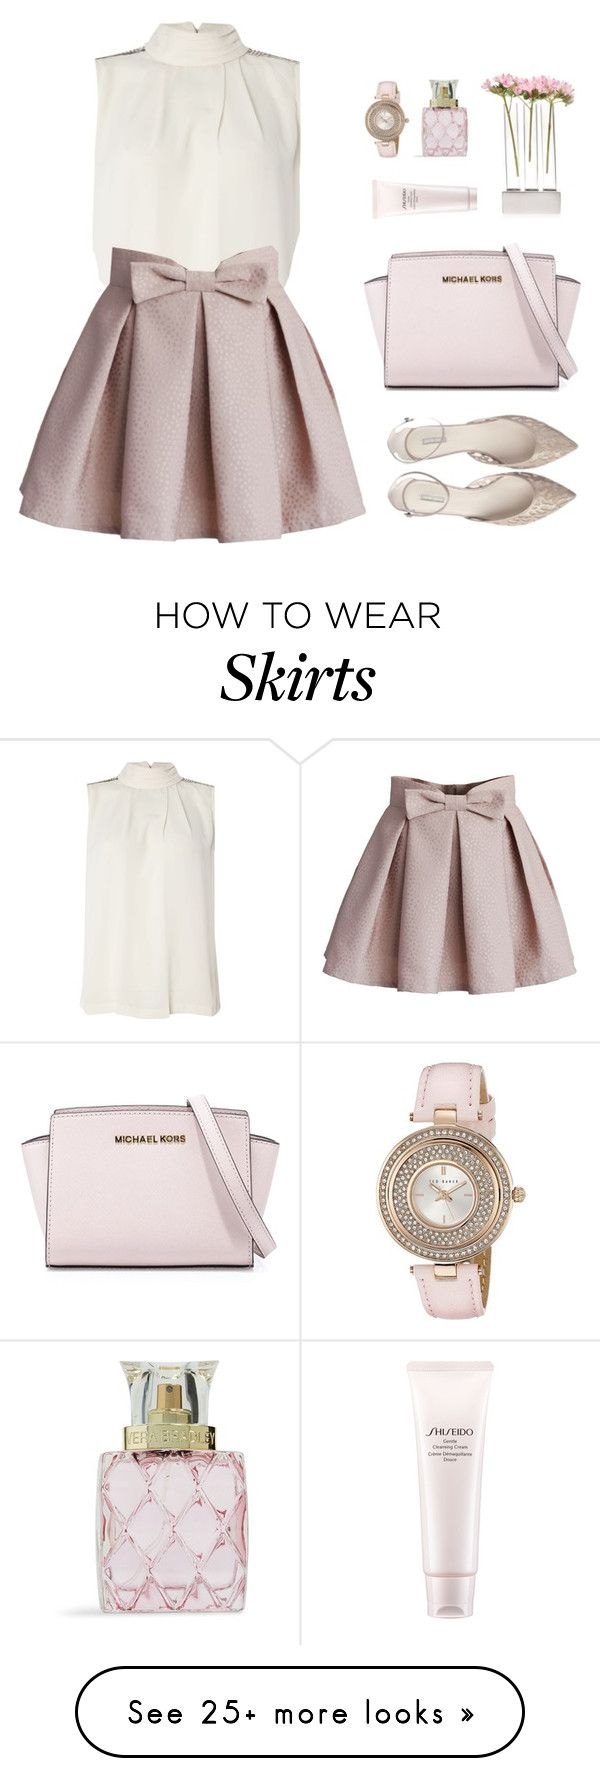 """Romantic Blush"" by sweetpastelady on Polyvore featuring Y.A.S, Chicwish, Ted Baker, MICHAEL Michael Kors, Vera Bradley, Shiseido, Chive, women's clothing, women's fashion and women"